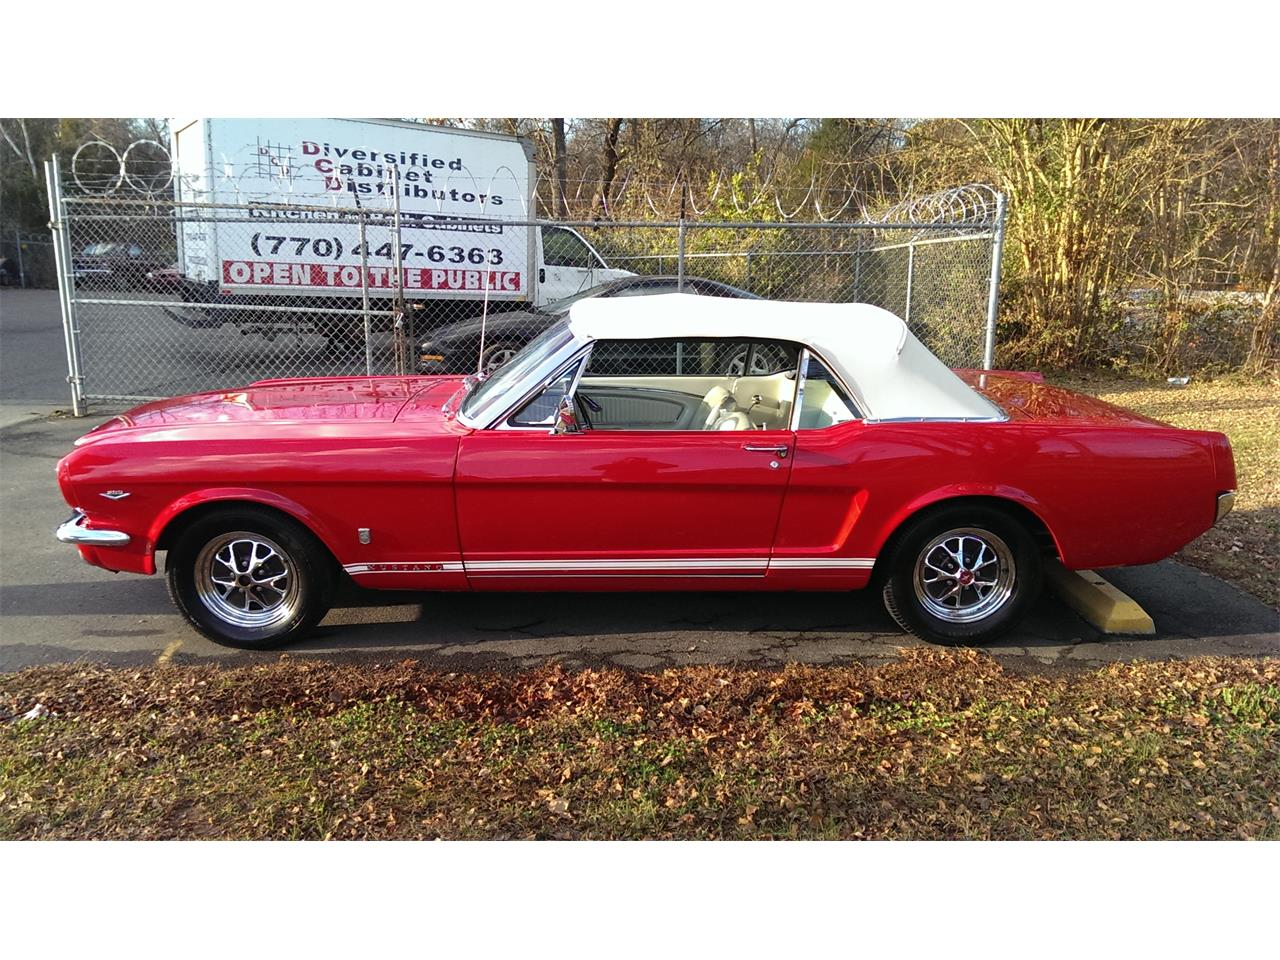 Large Picture of Classic '65 Ford Mustang located in Charlotte North Carolina - $35,000.00 Offered by a Private Seller - D1TR